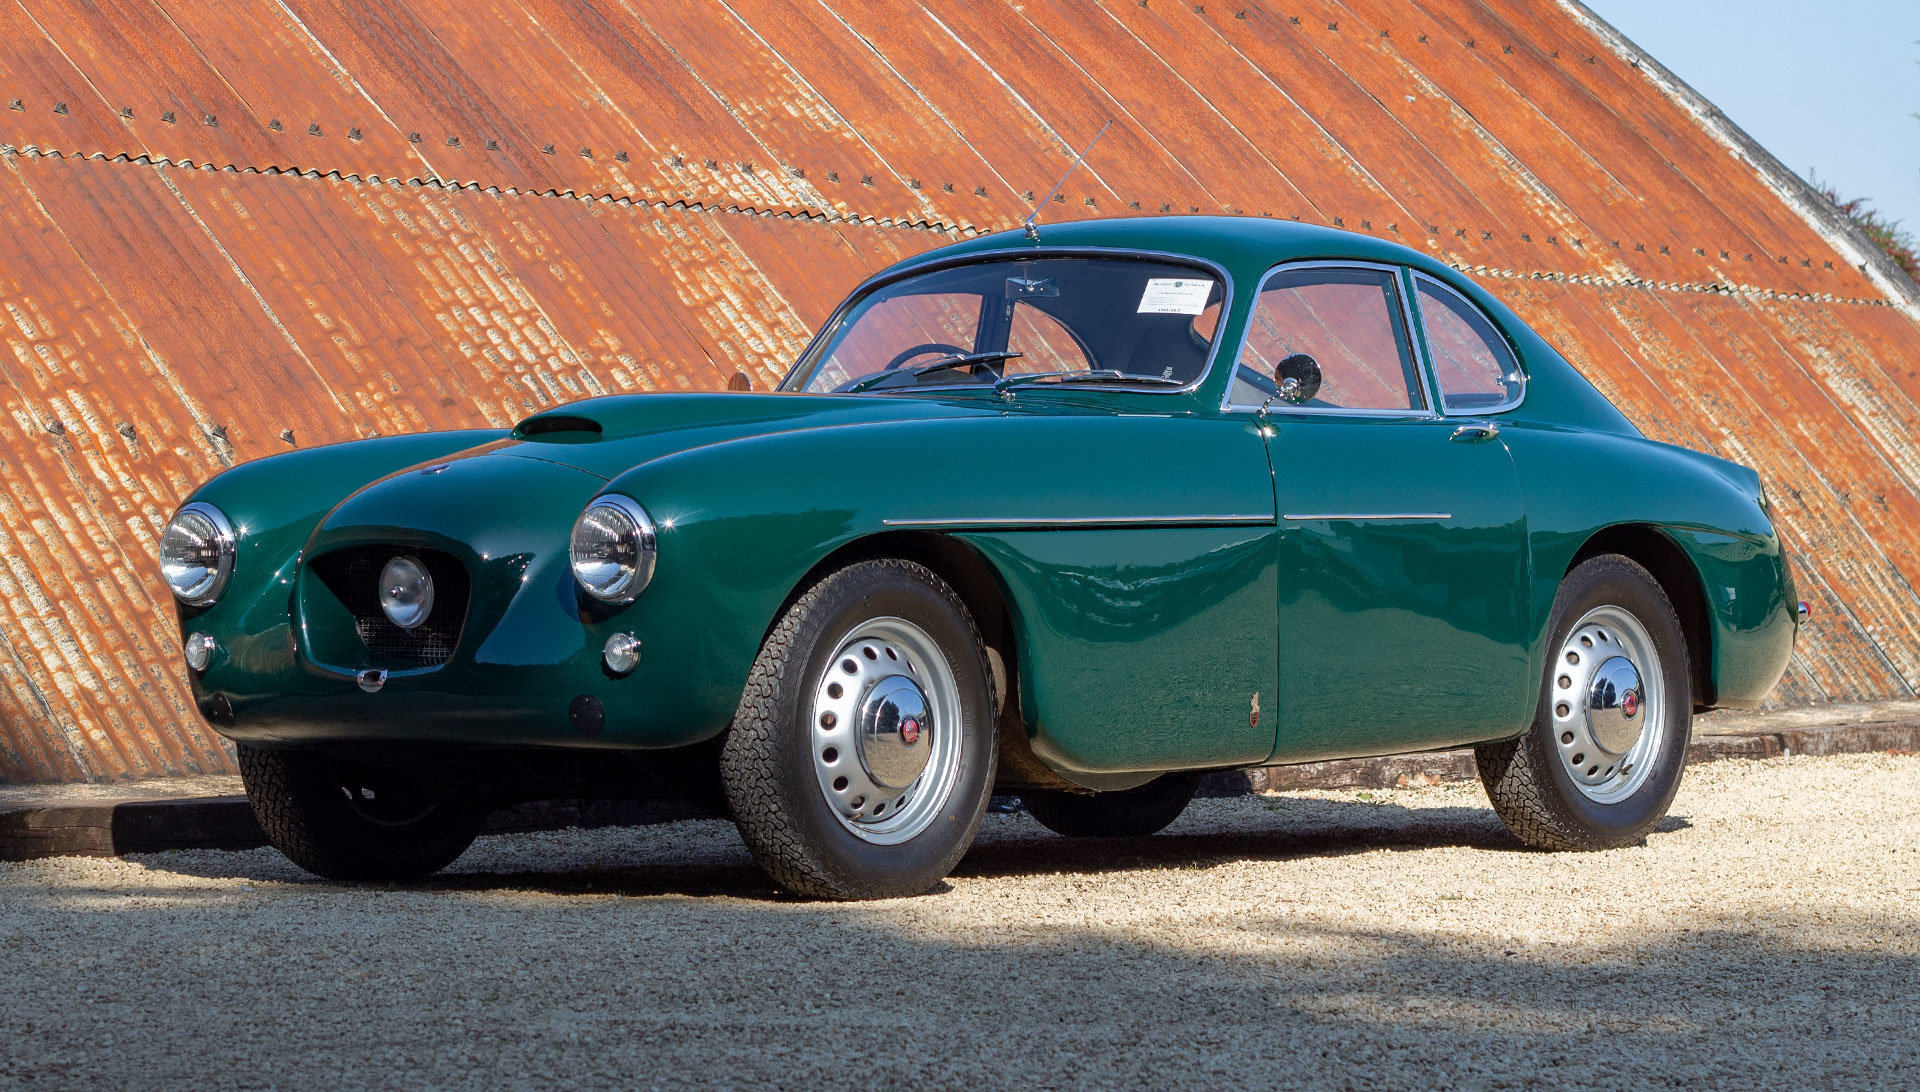 1955 Bristol 404 Coupé - £40k mechanical rebuild in 2019 For Sale (picture 1 of 19)